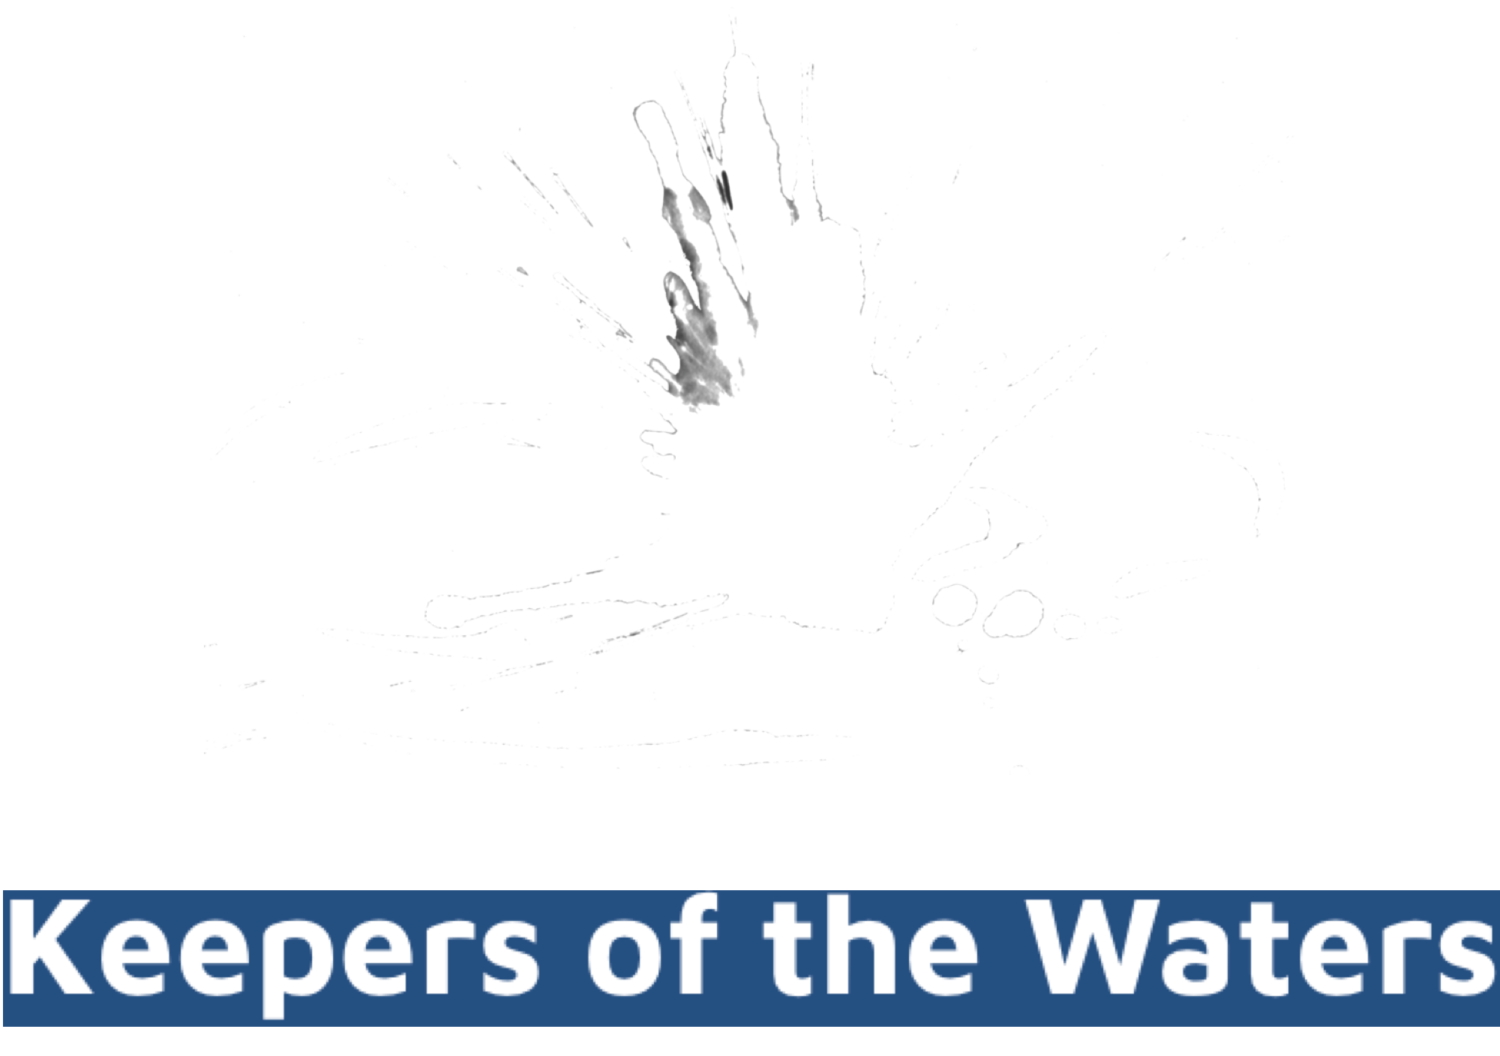 Keepers of the Waters